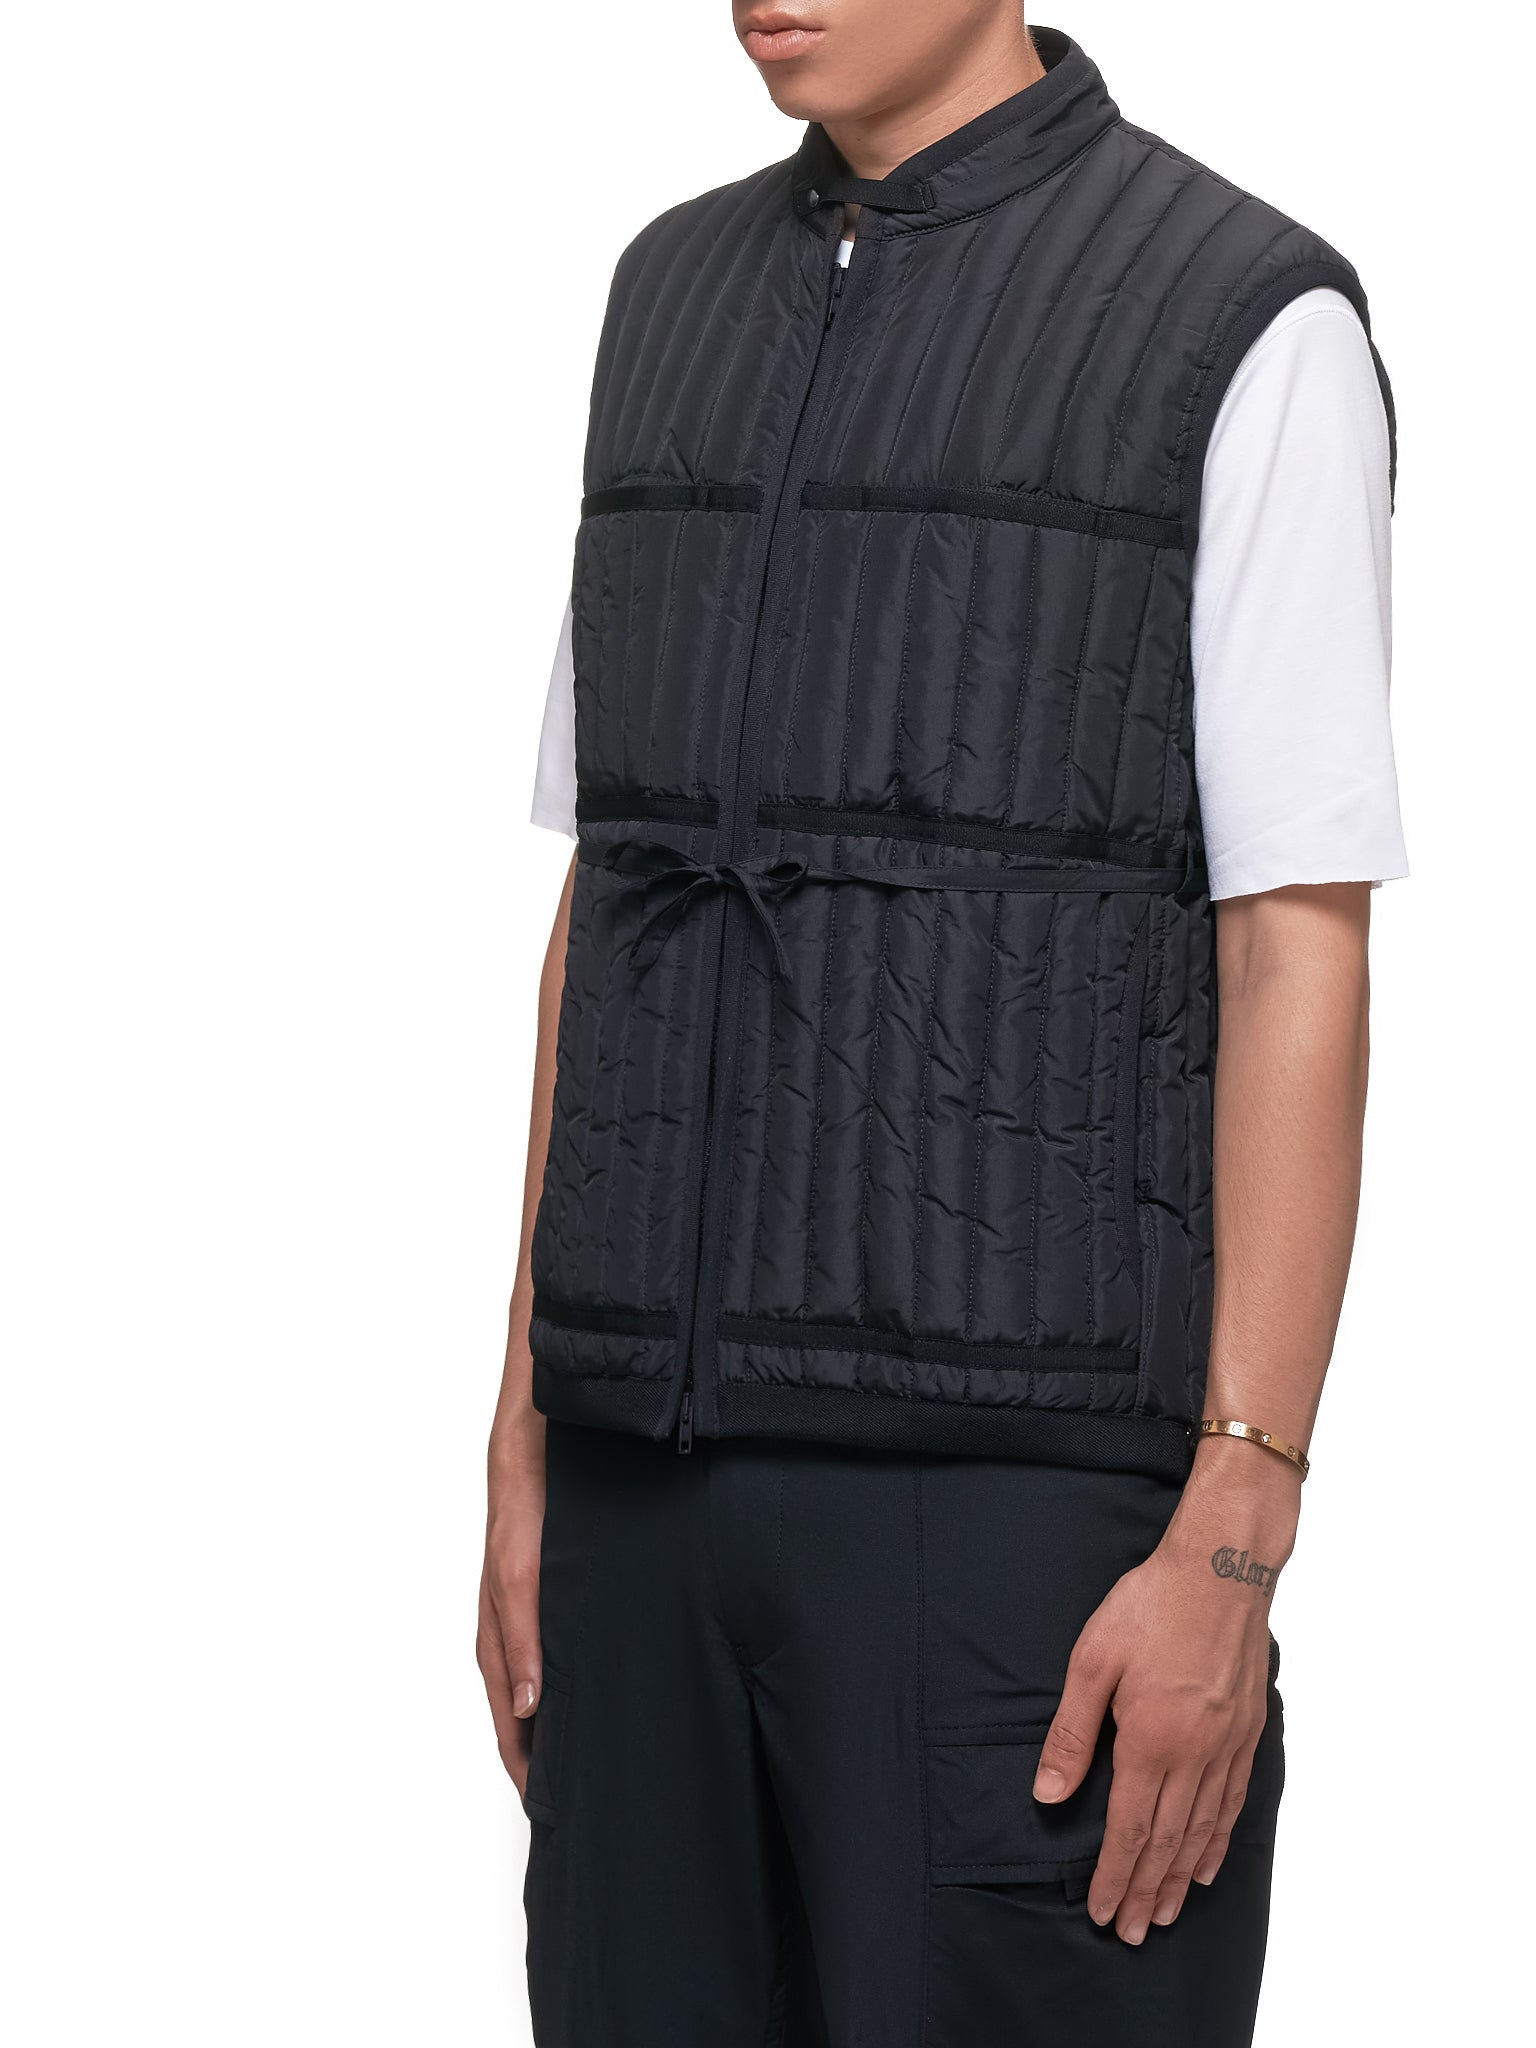 Craig Green Vest - Hlorenzo Side